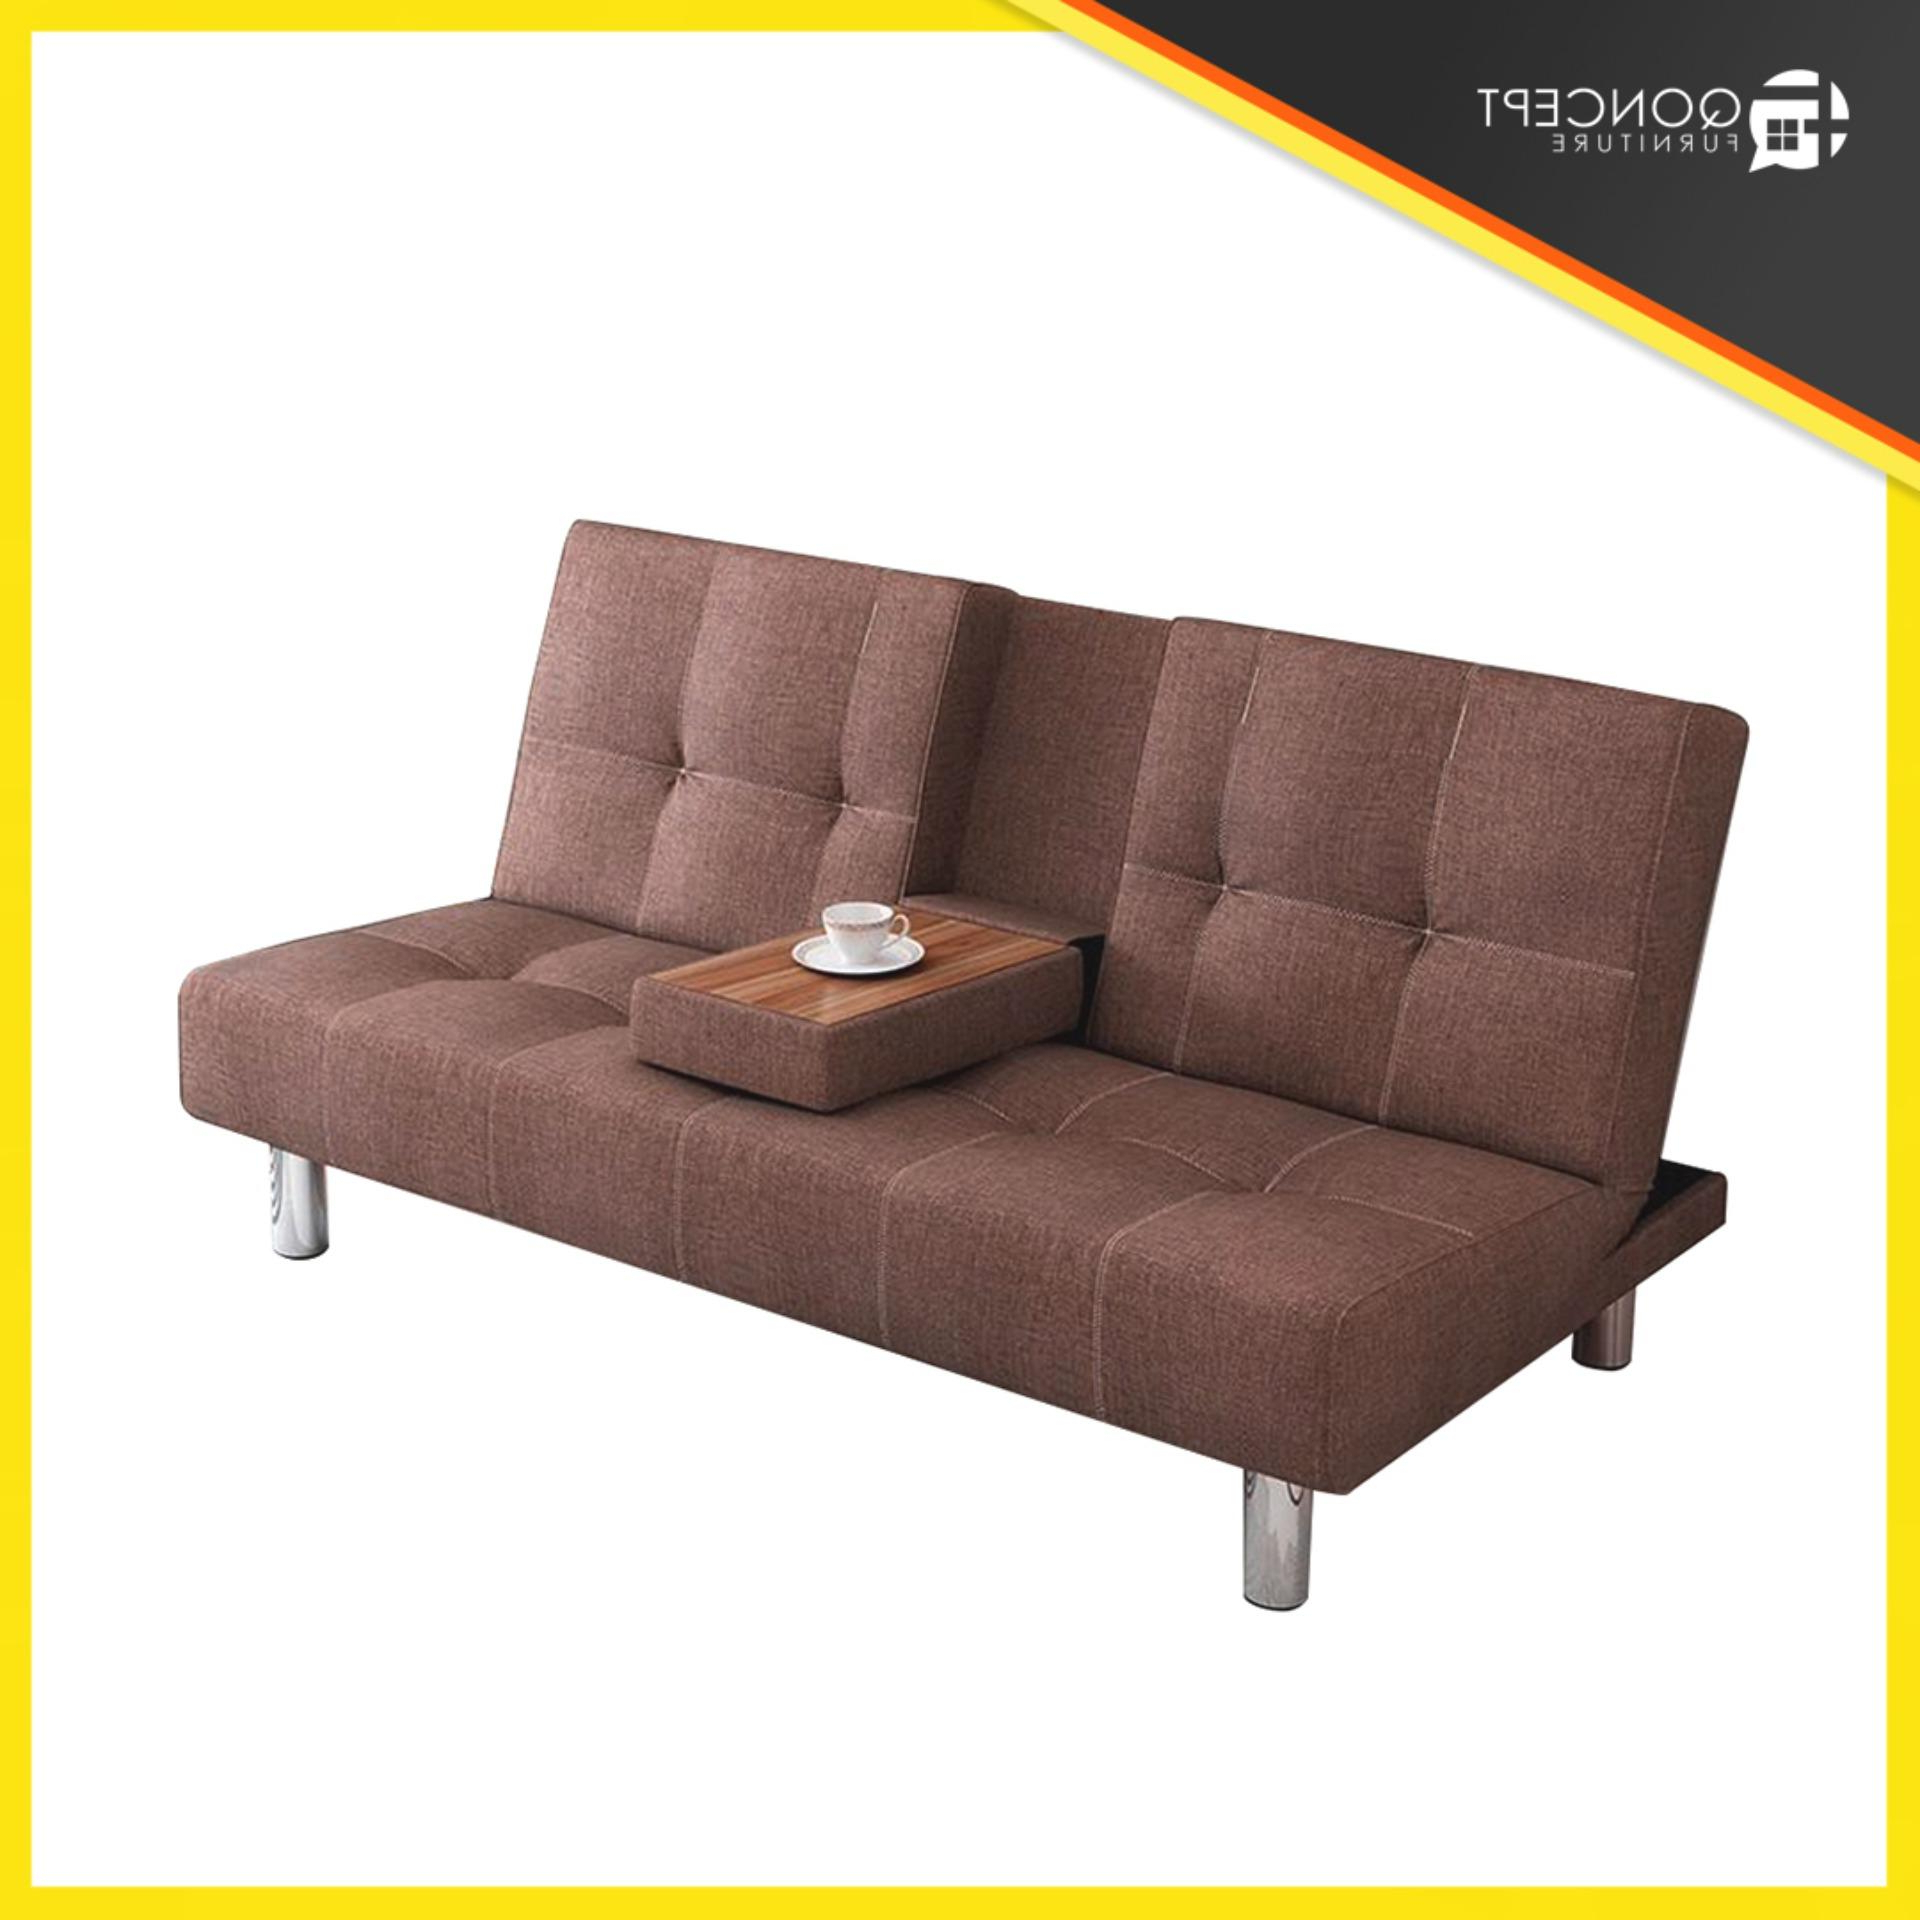 Sofas For Sale – Home Sofa Prices, Brands & Review In Philippines Within Current Convertible Sofa Chair Bed (View 14 of 20)